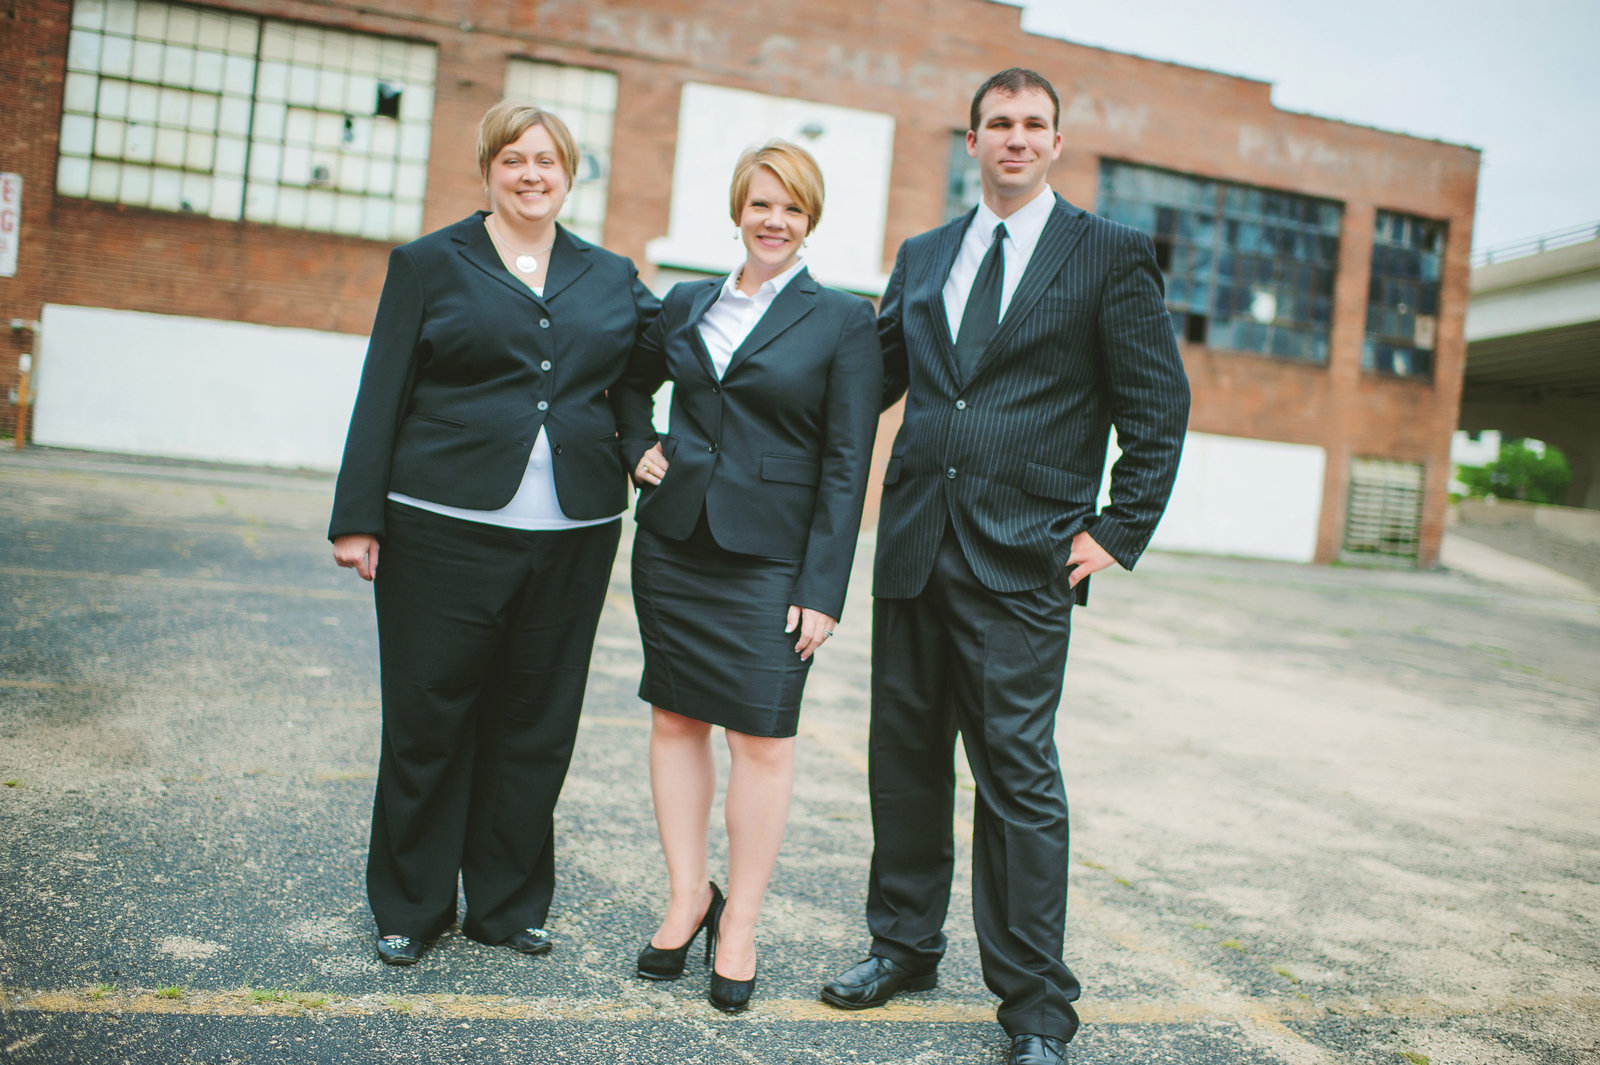 032_peoria_IL_commerical_photography